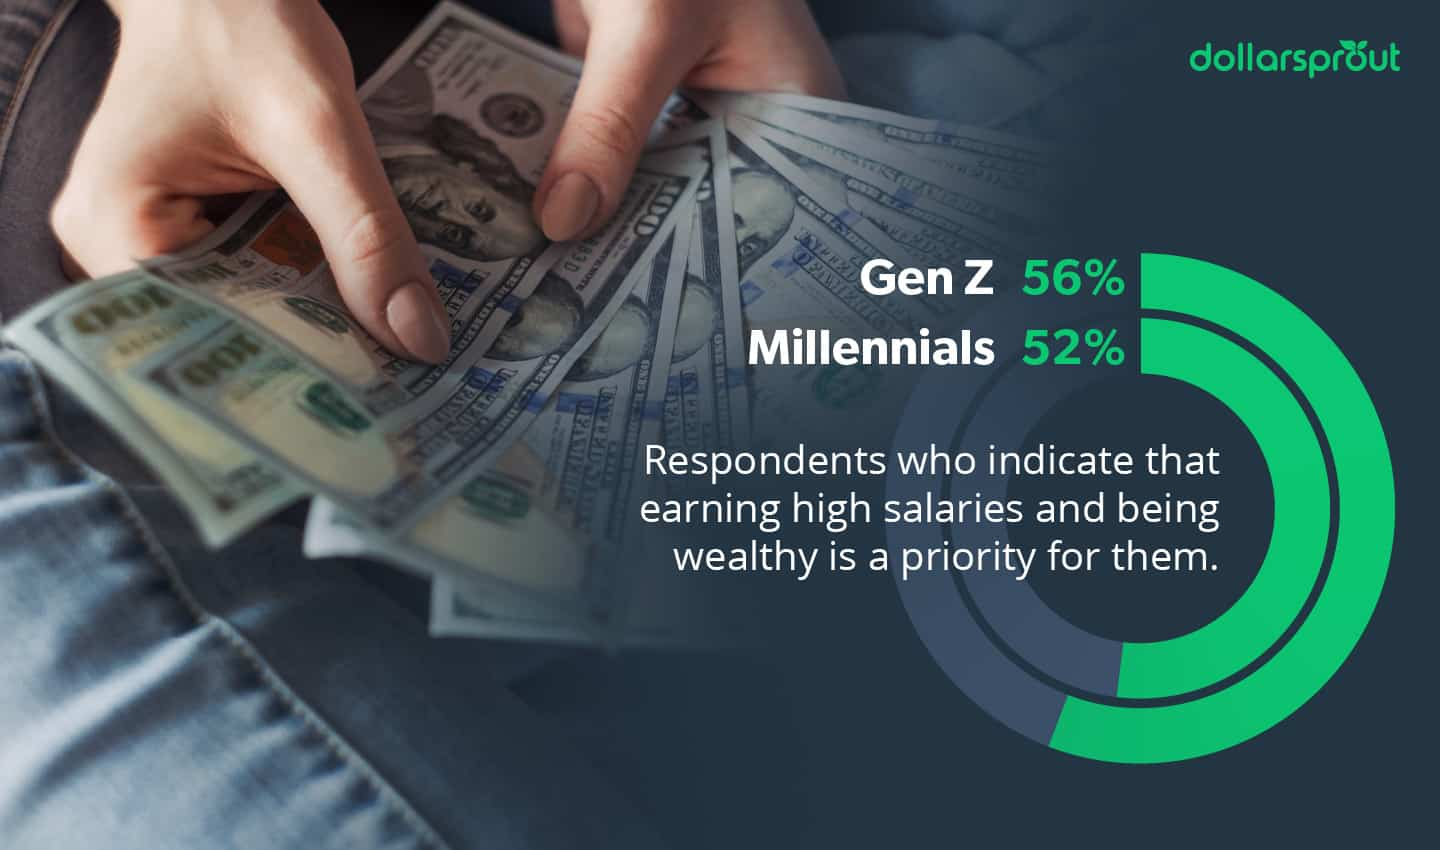 Respondents who indicate that earning high salaries and being wealthy is a priority for them.